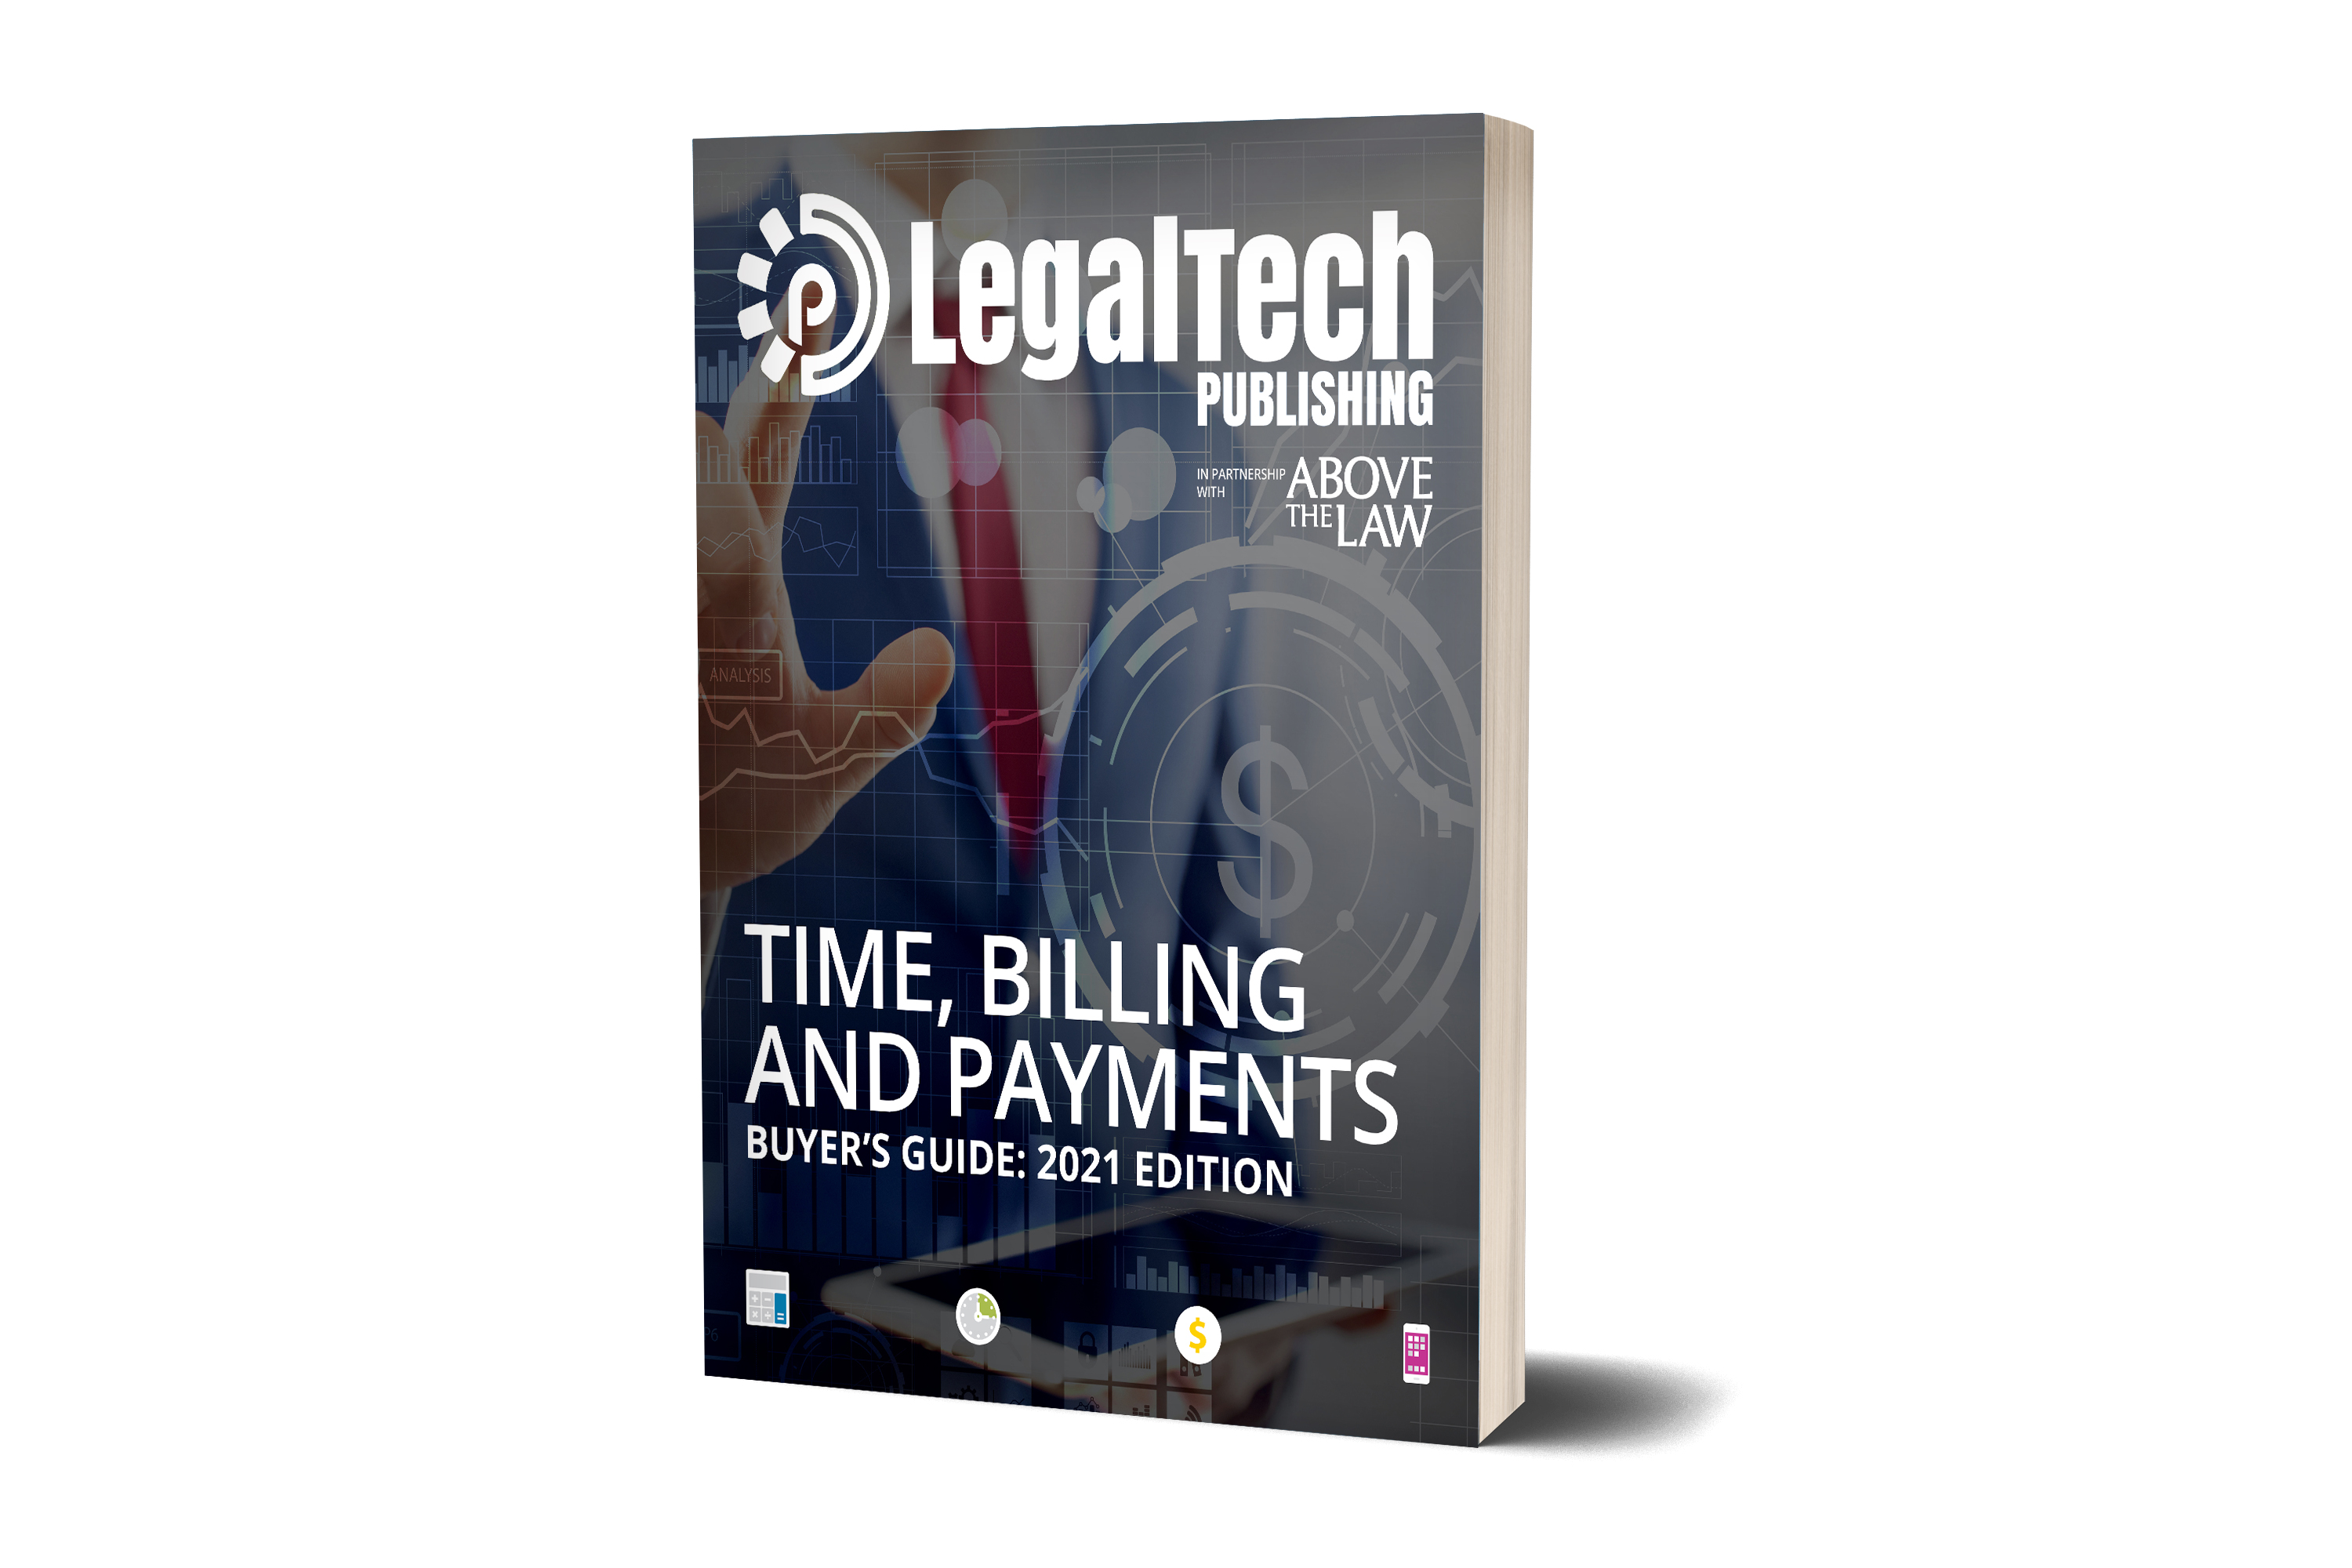 Time-Billing-and-Payments-Buyers-Guide-2021-Cover-Standing